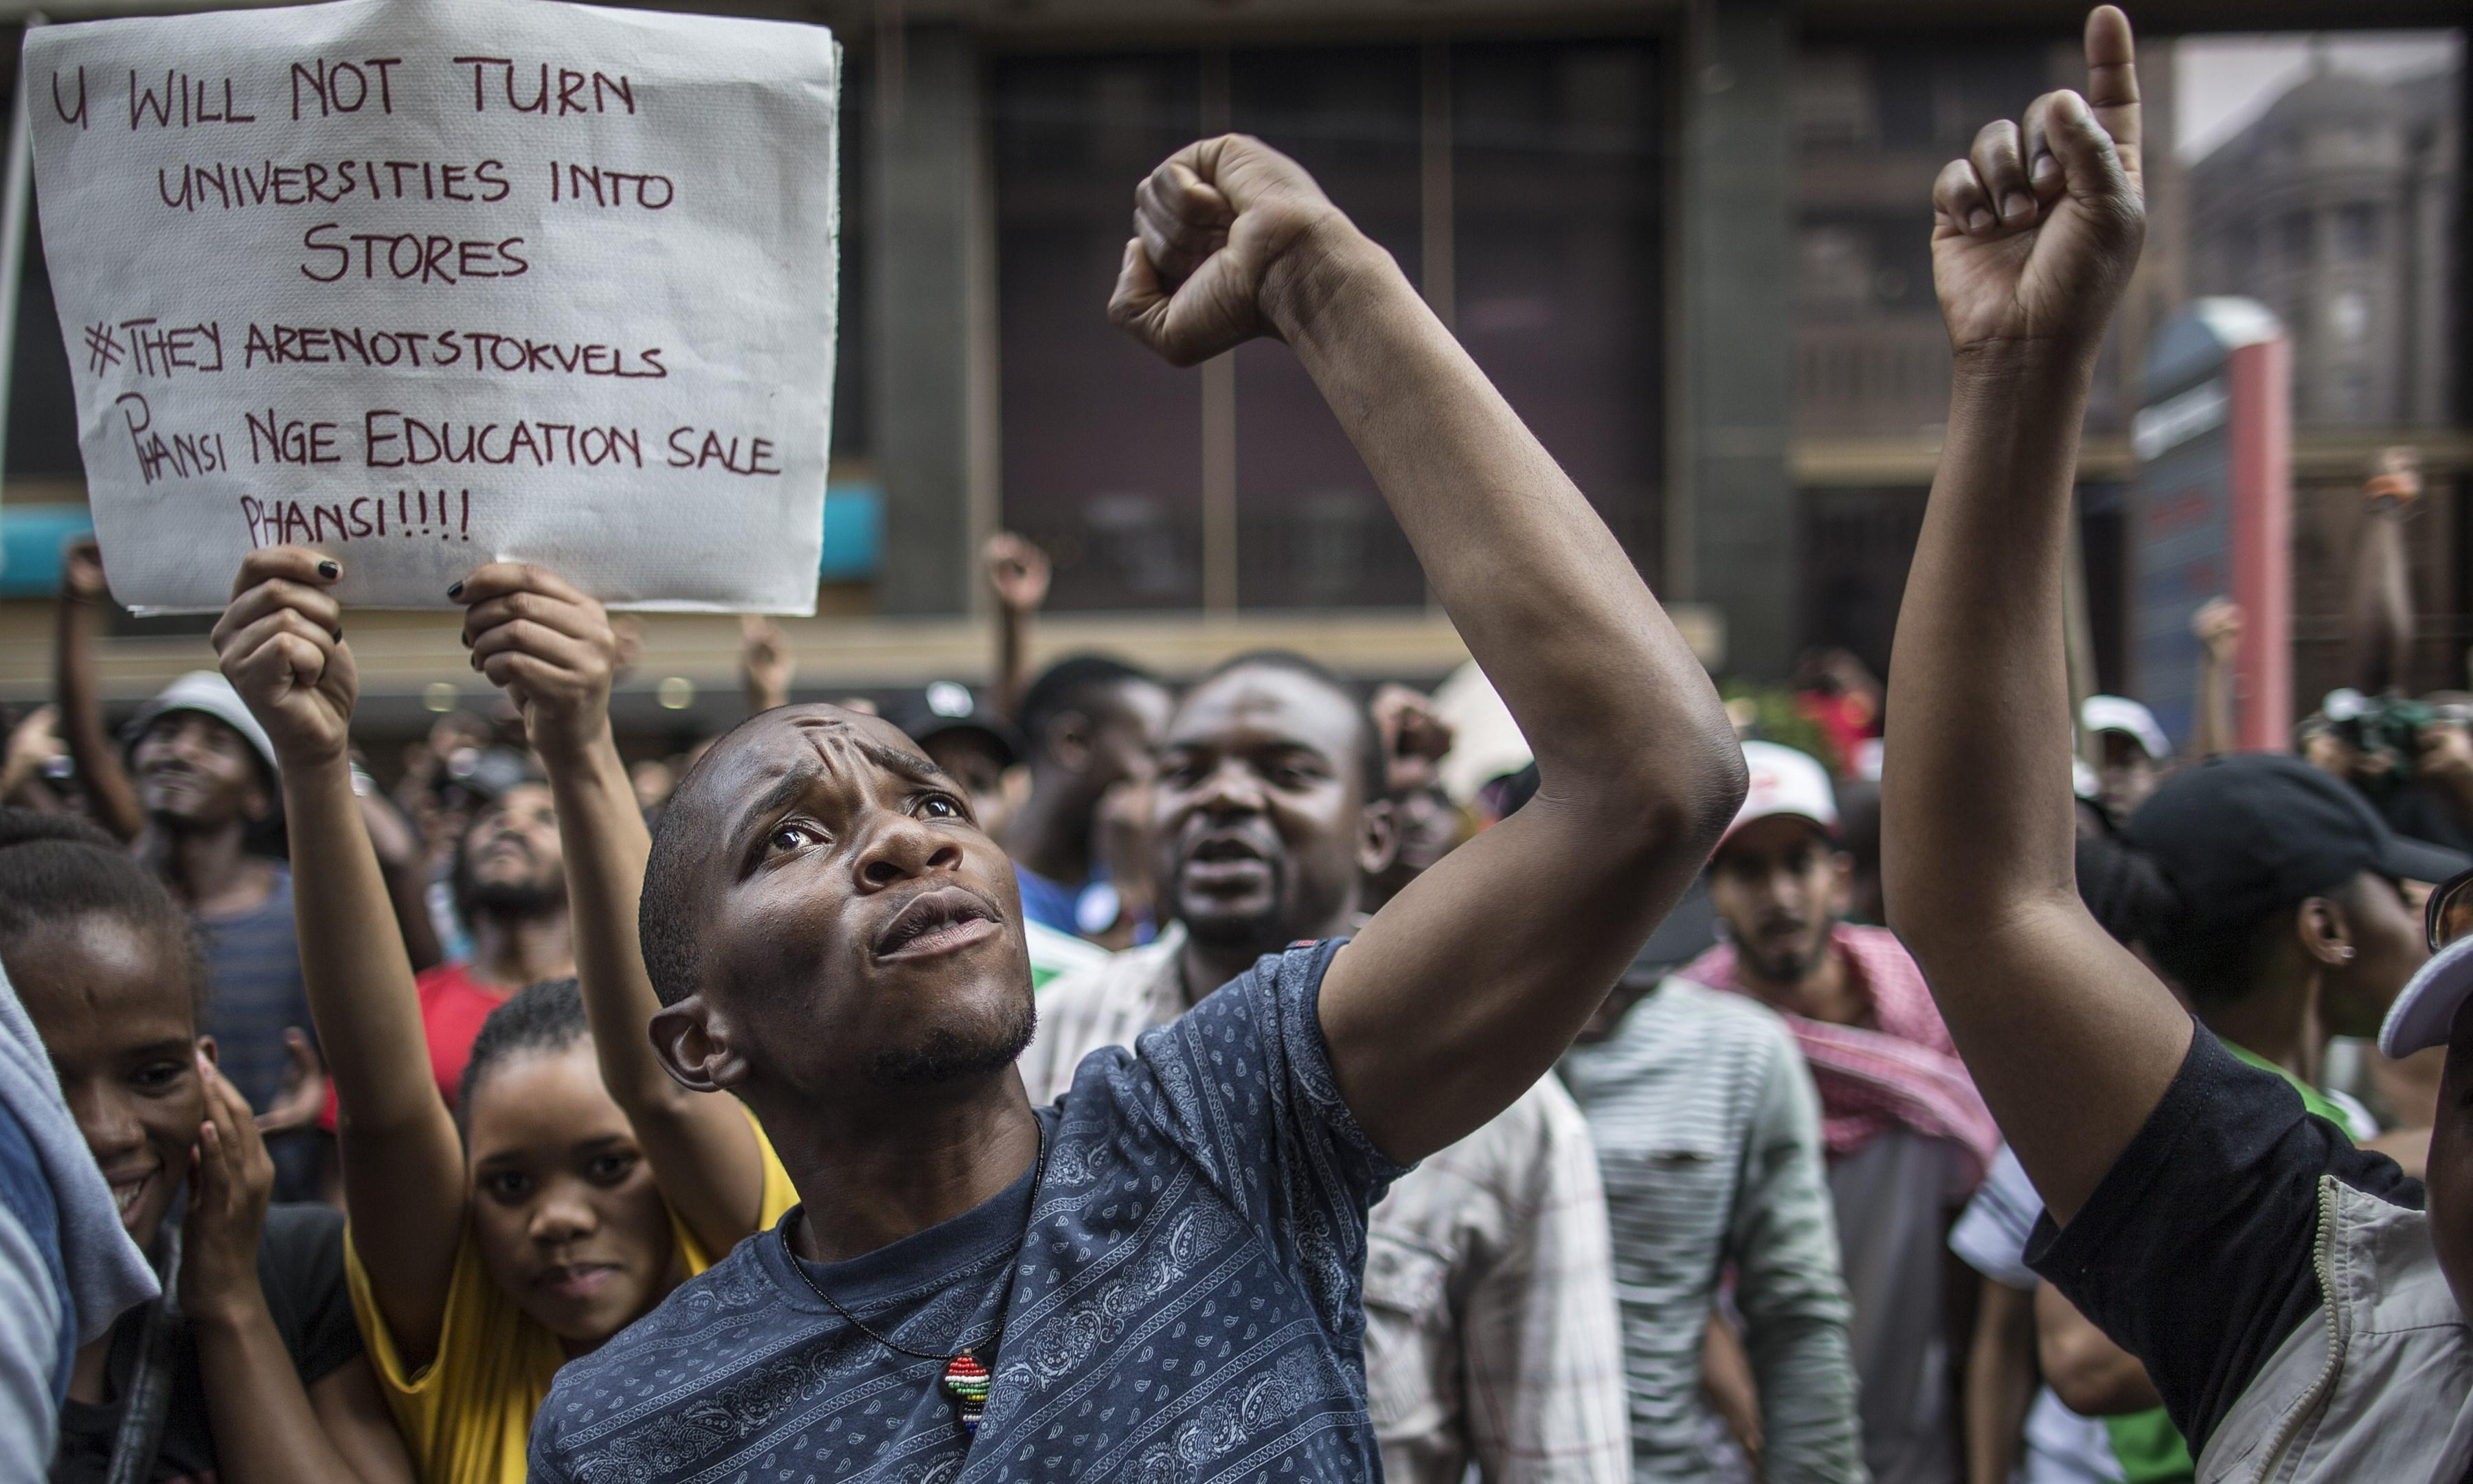 South Africa's student protests have lessons for all universities